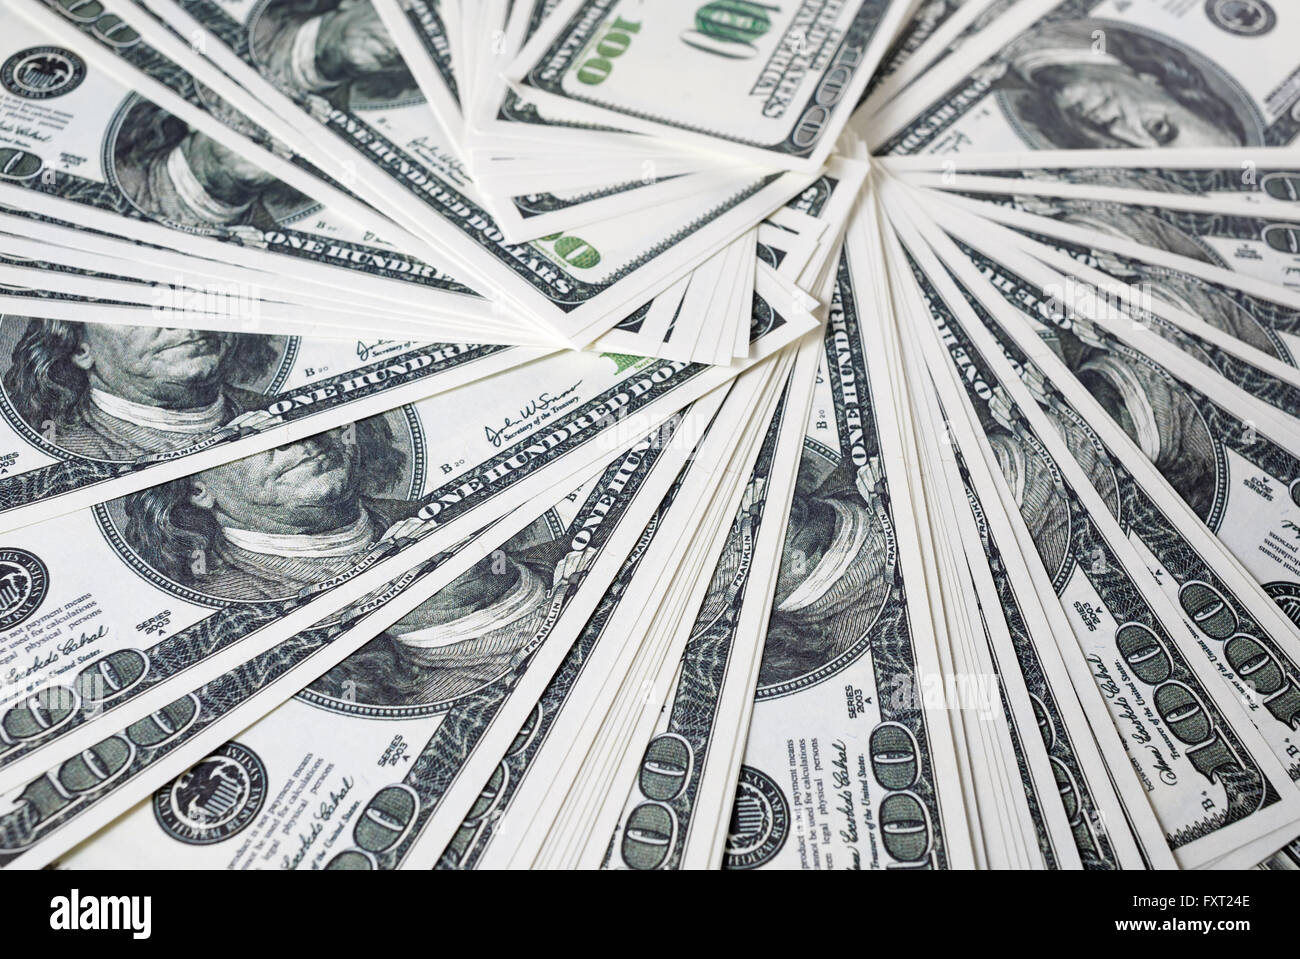 Close-up of a lot of one hundred dollar bills. Much money. A lot of money. Counterfeit money. Selective focus. - Stock Image